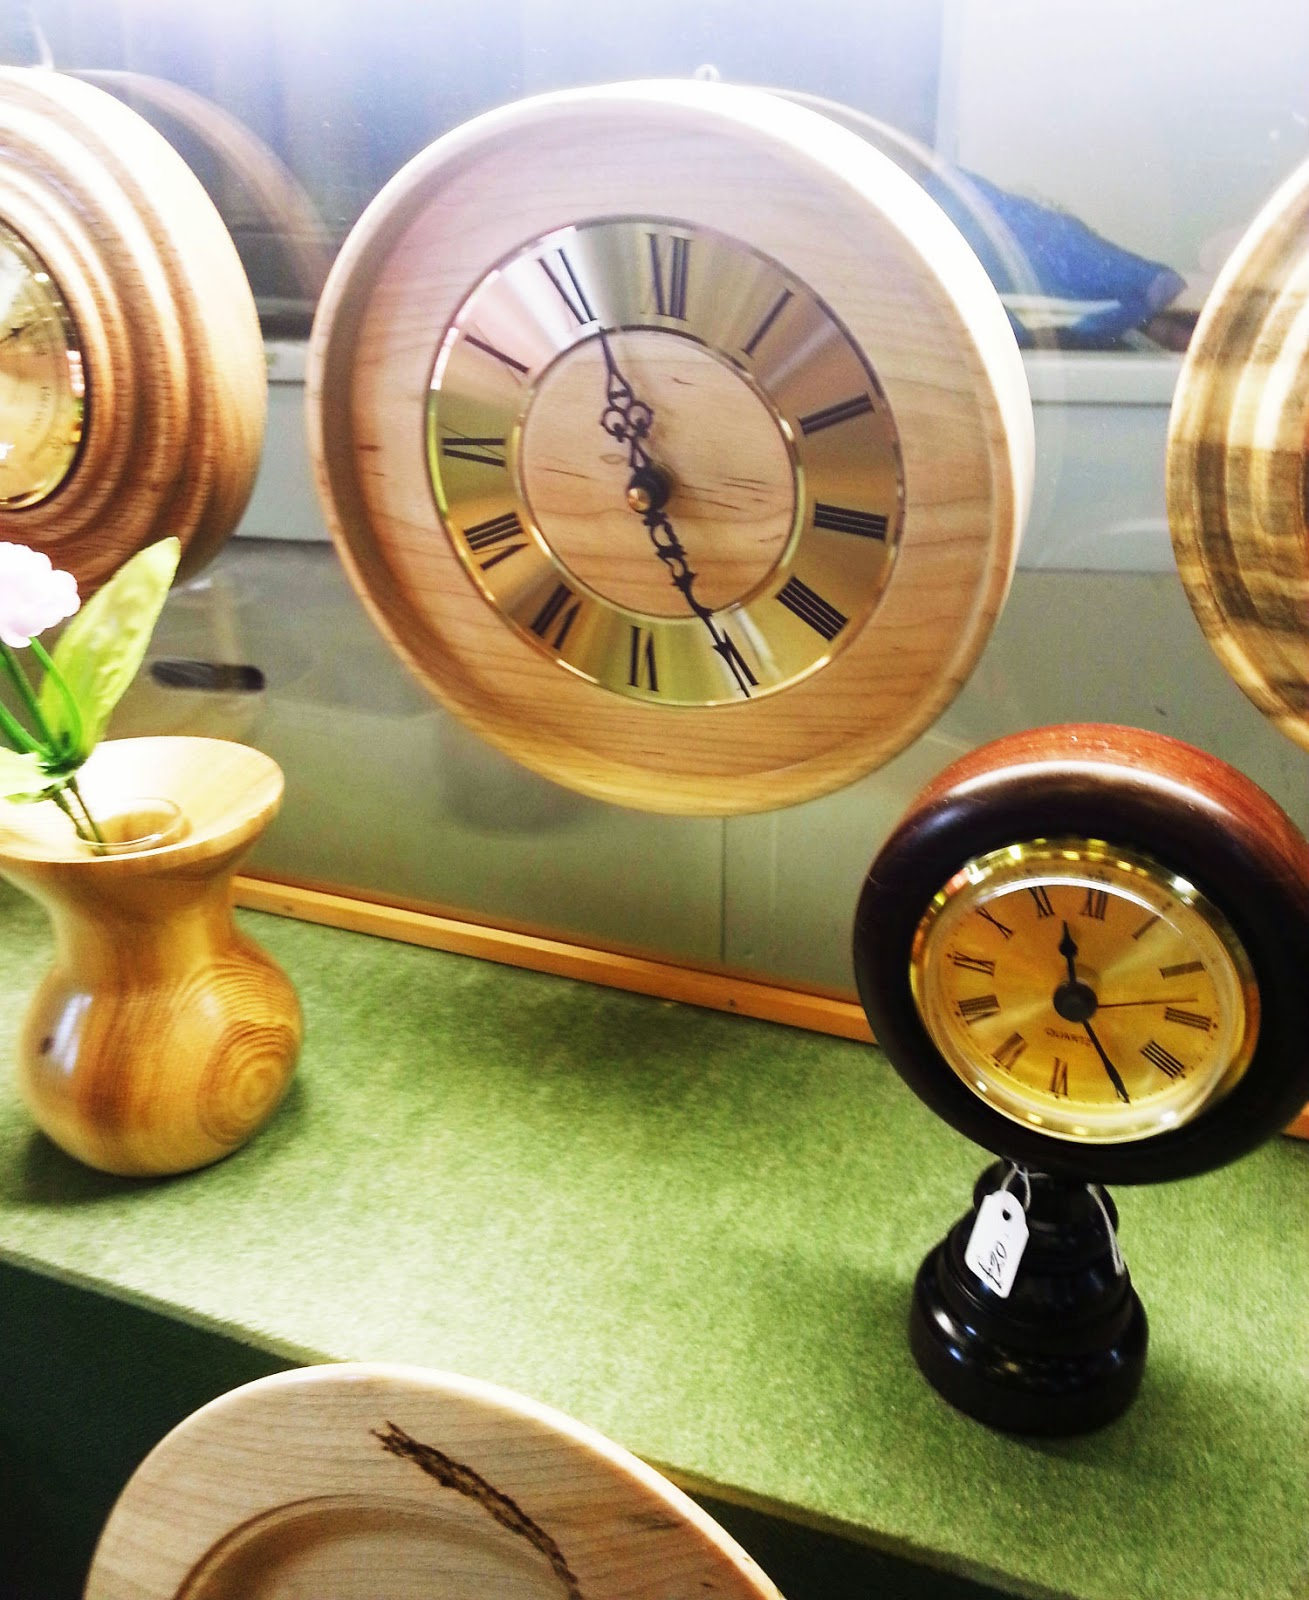 Wiseowls - Pimperne Blandford Wooden clocks